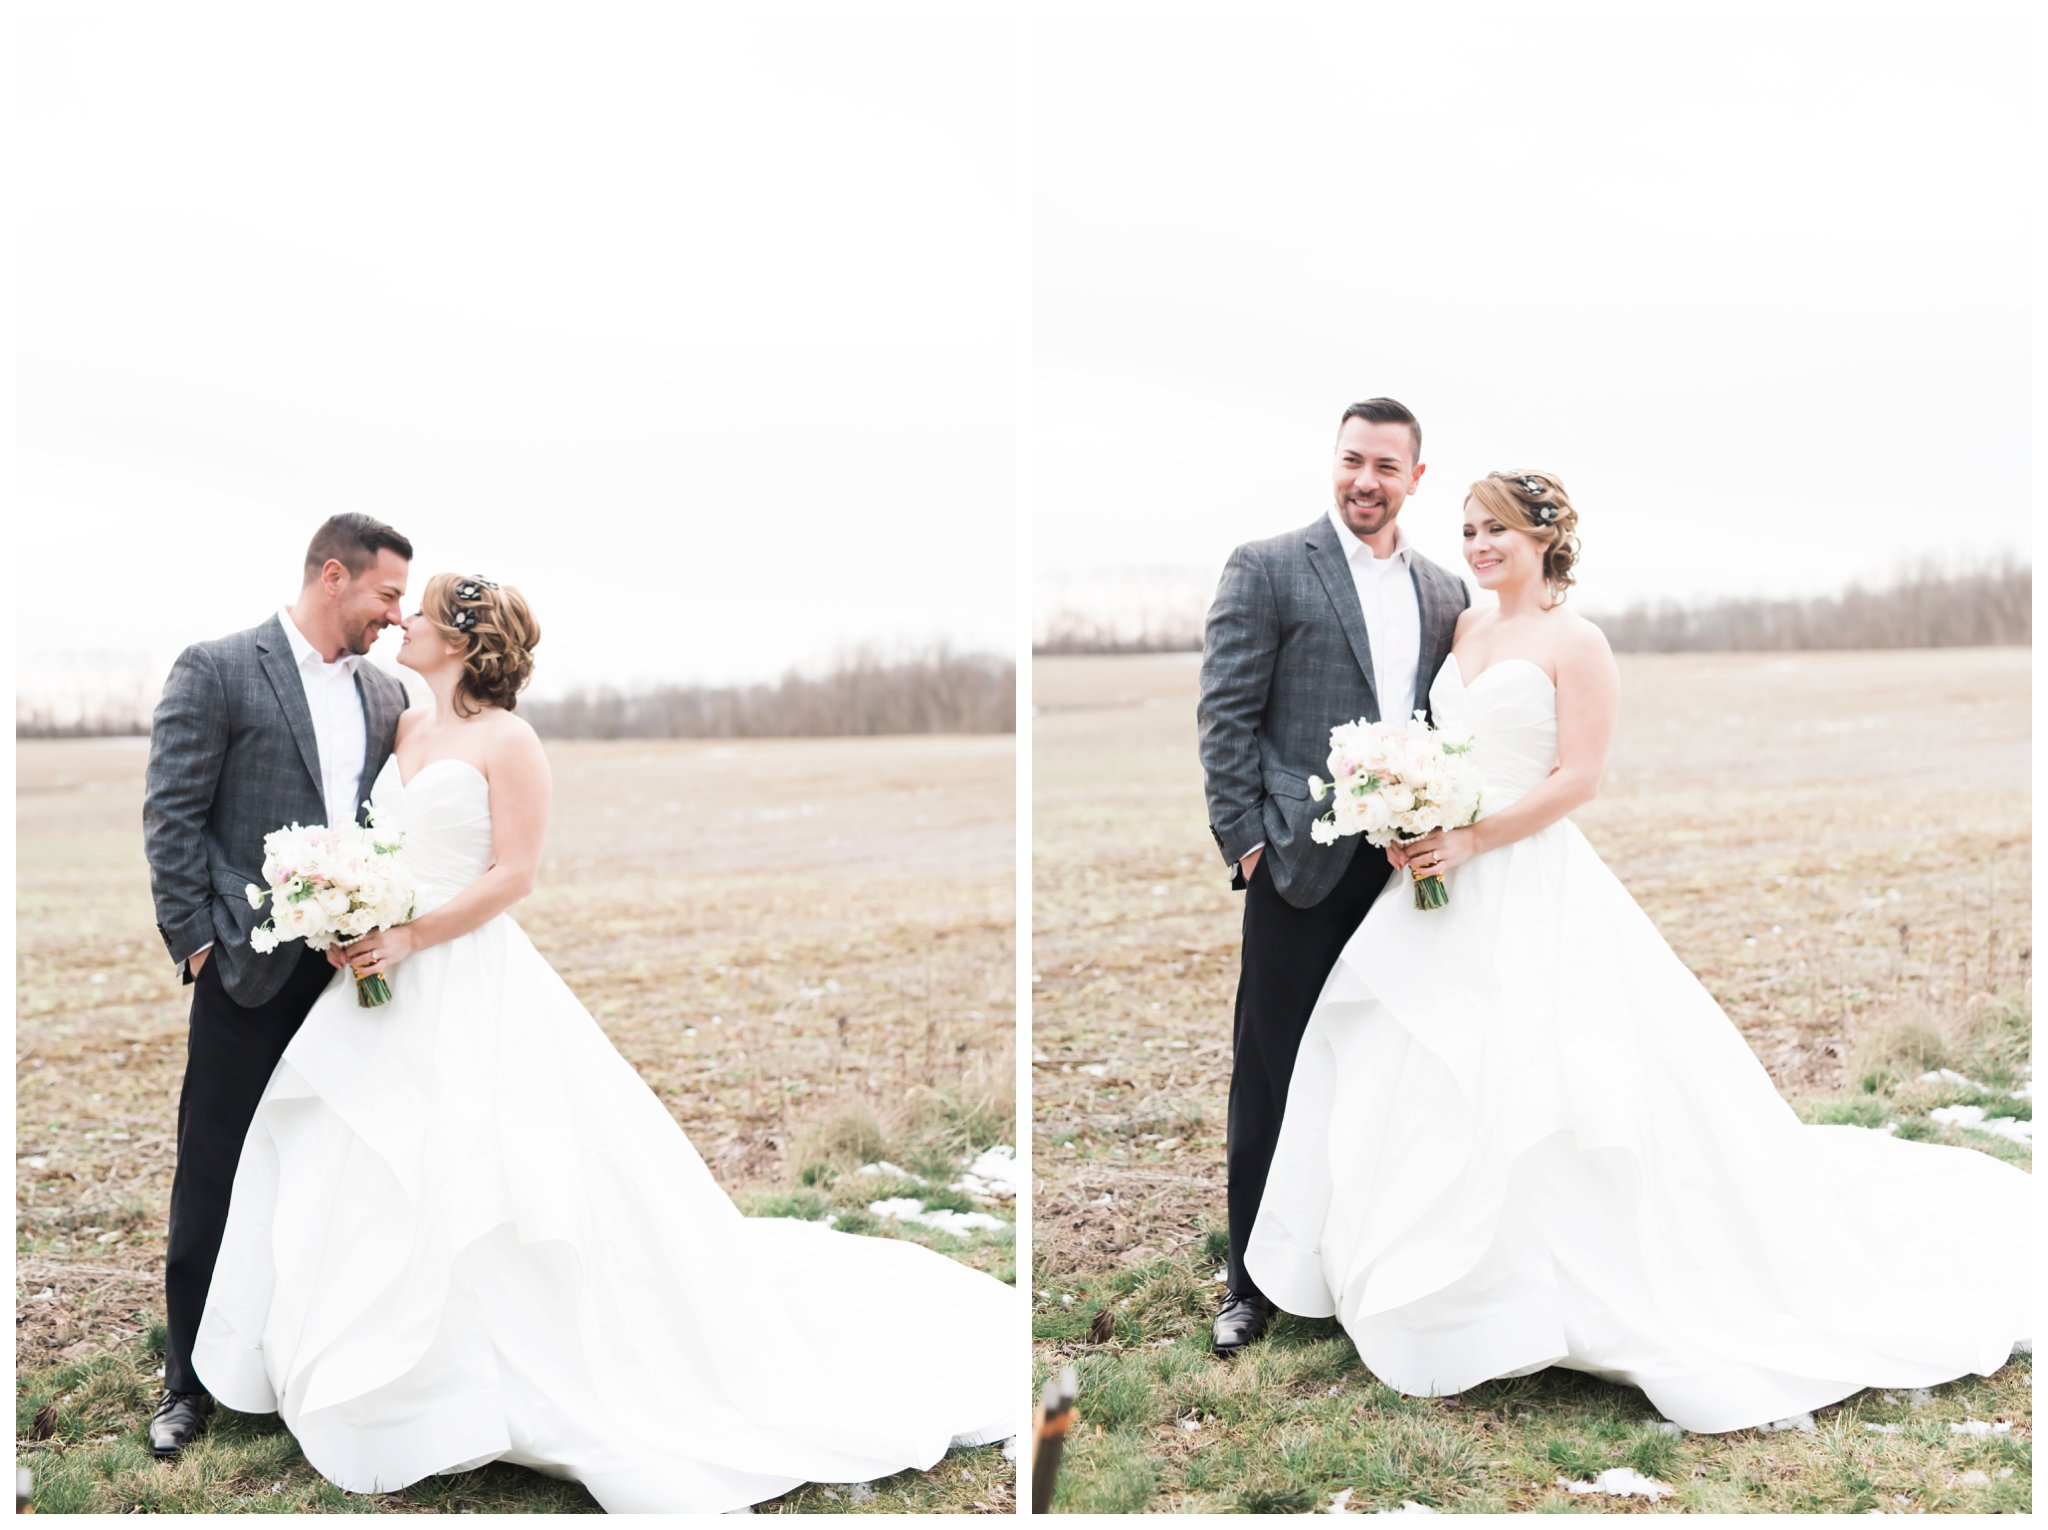 bride and groom with beautiful wedding gown at ashford estate allentown new jersey